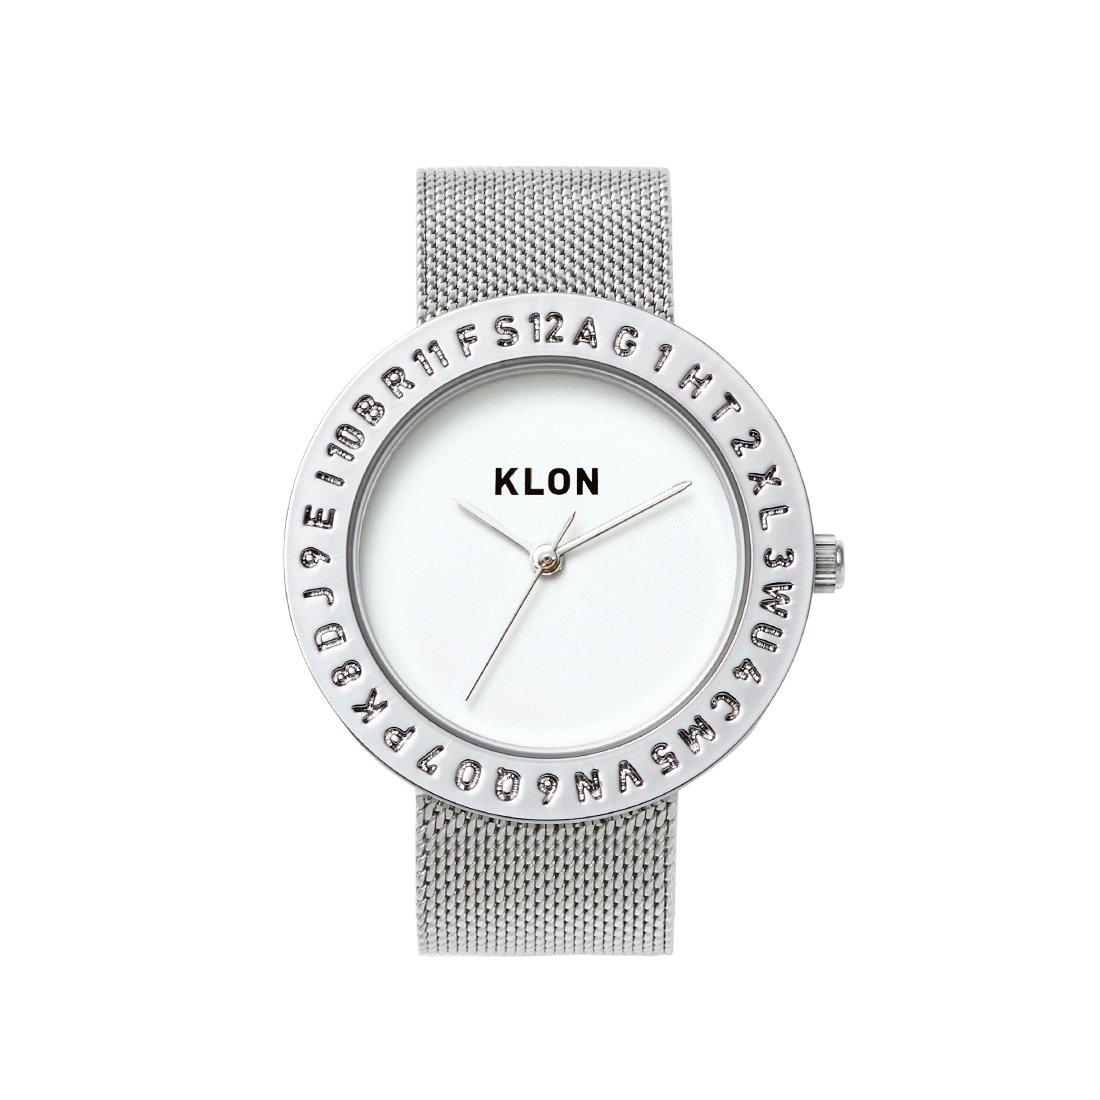 KLON ENGRAVE TIME -SILVER MESH- 40mm